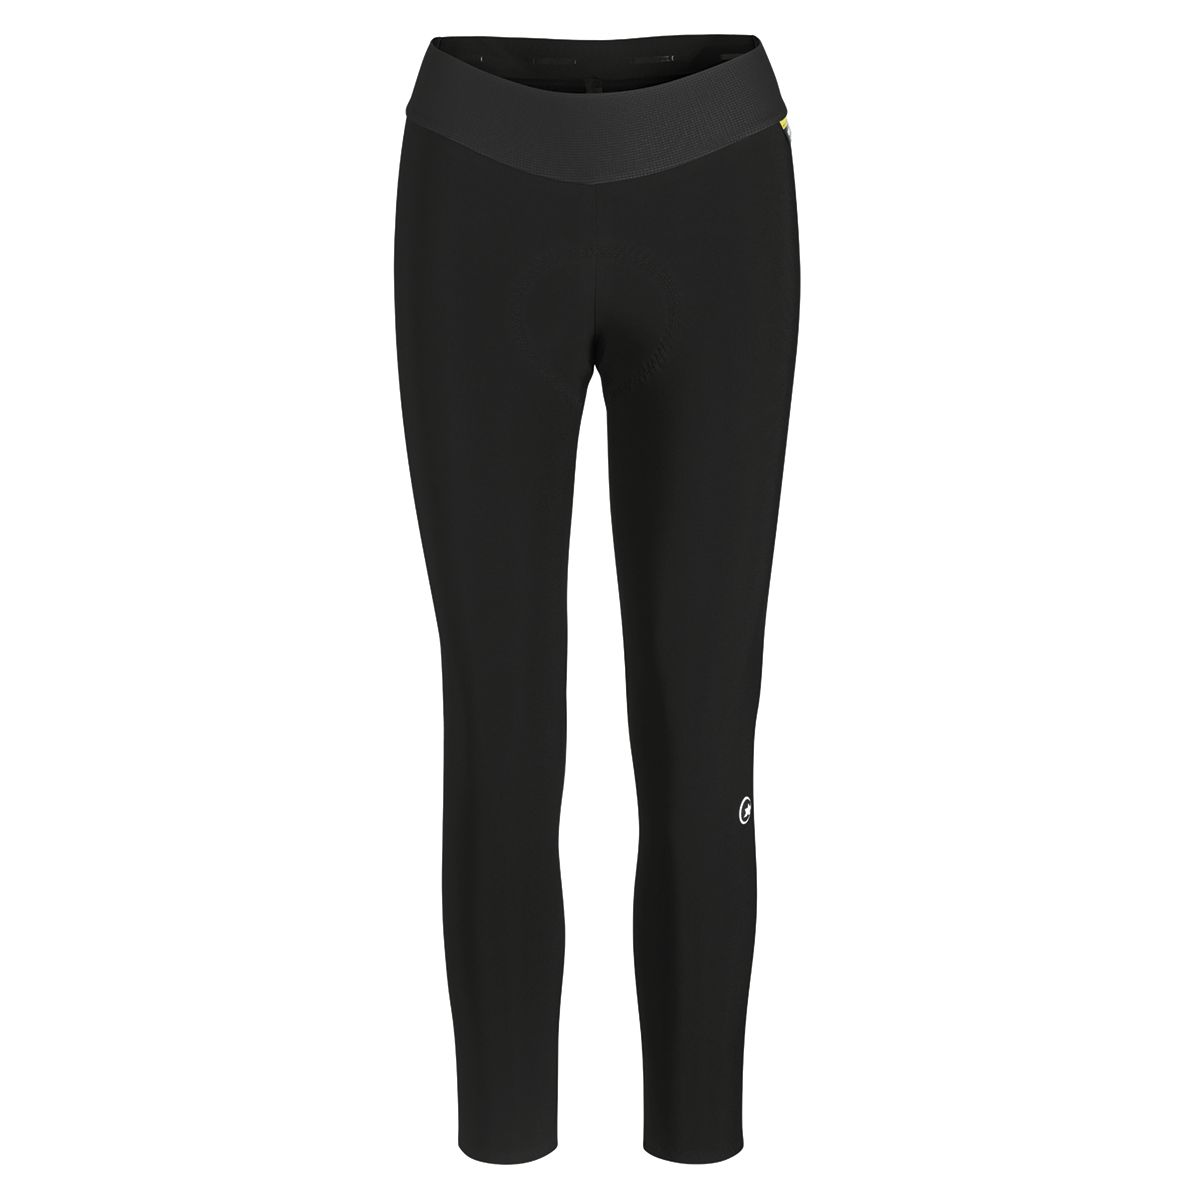 UMA GT SPRING FALL HALF TIGHTS Women